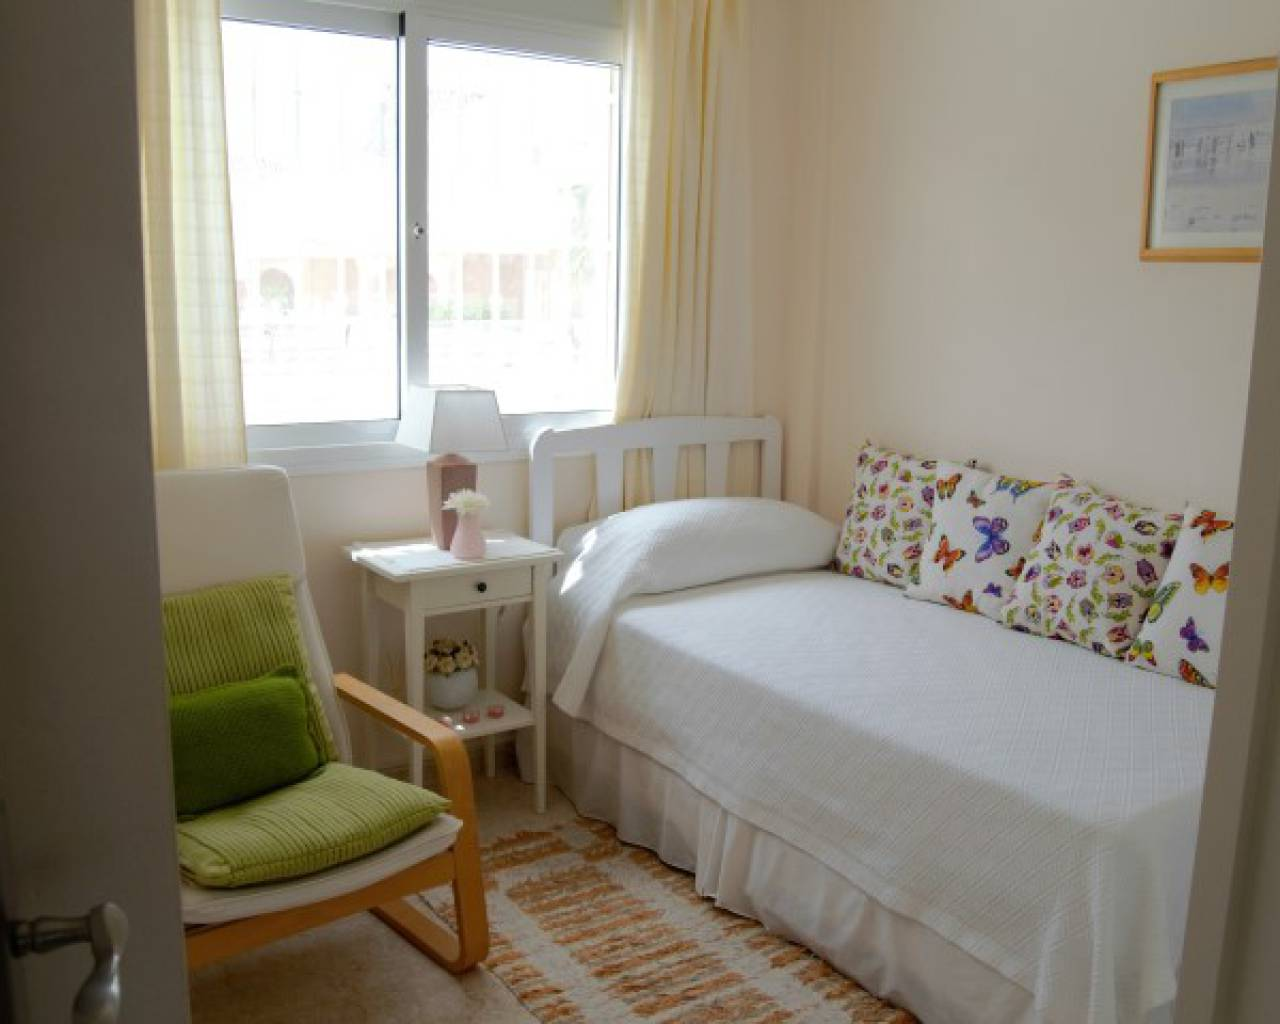 Resale - Townhouse - Alicante* NO USAR - Doña Pepa